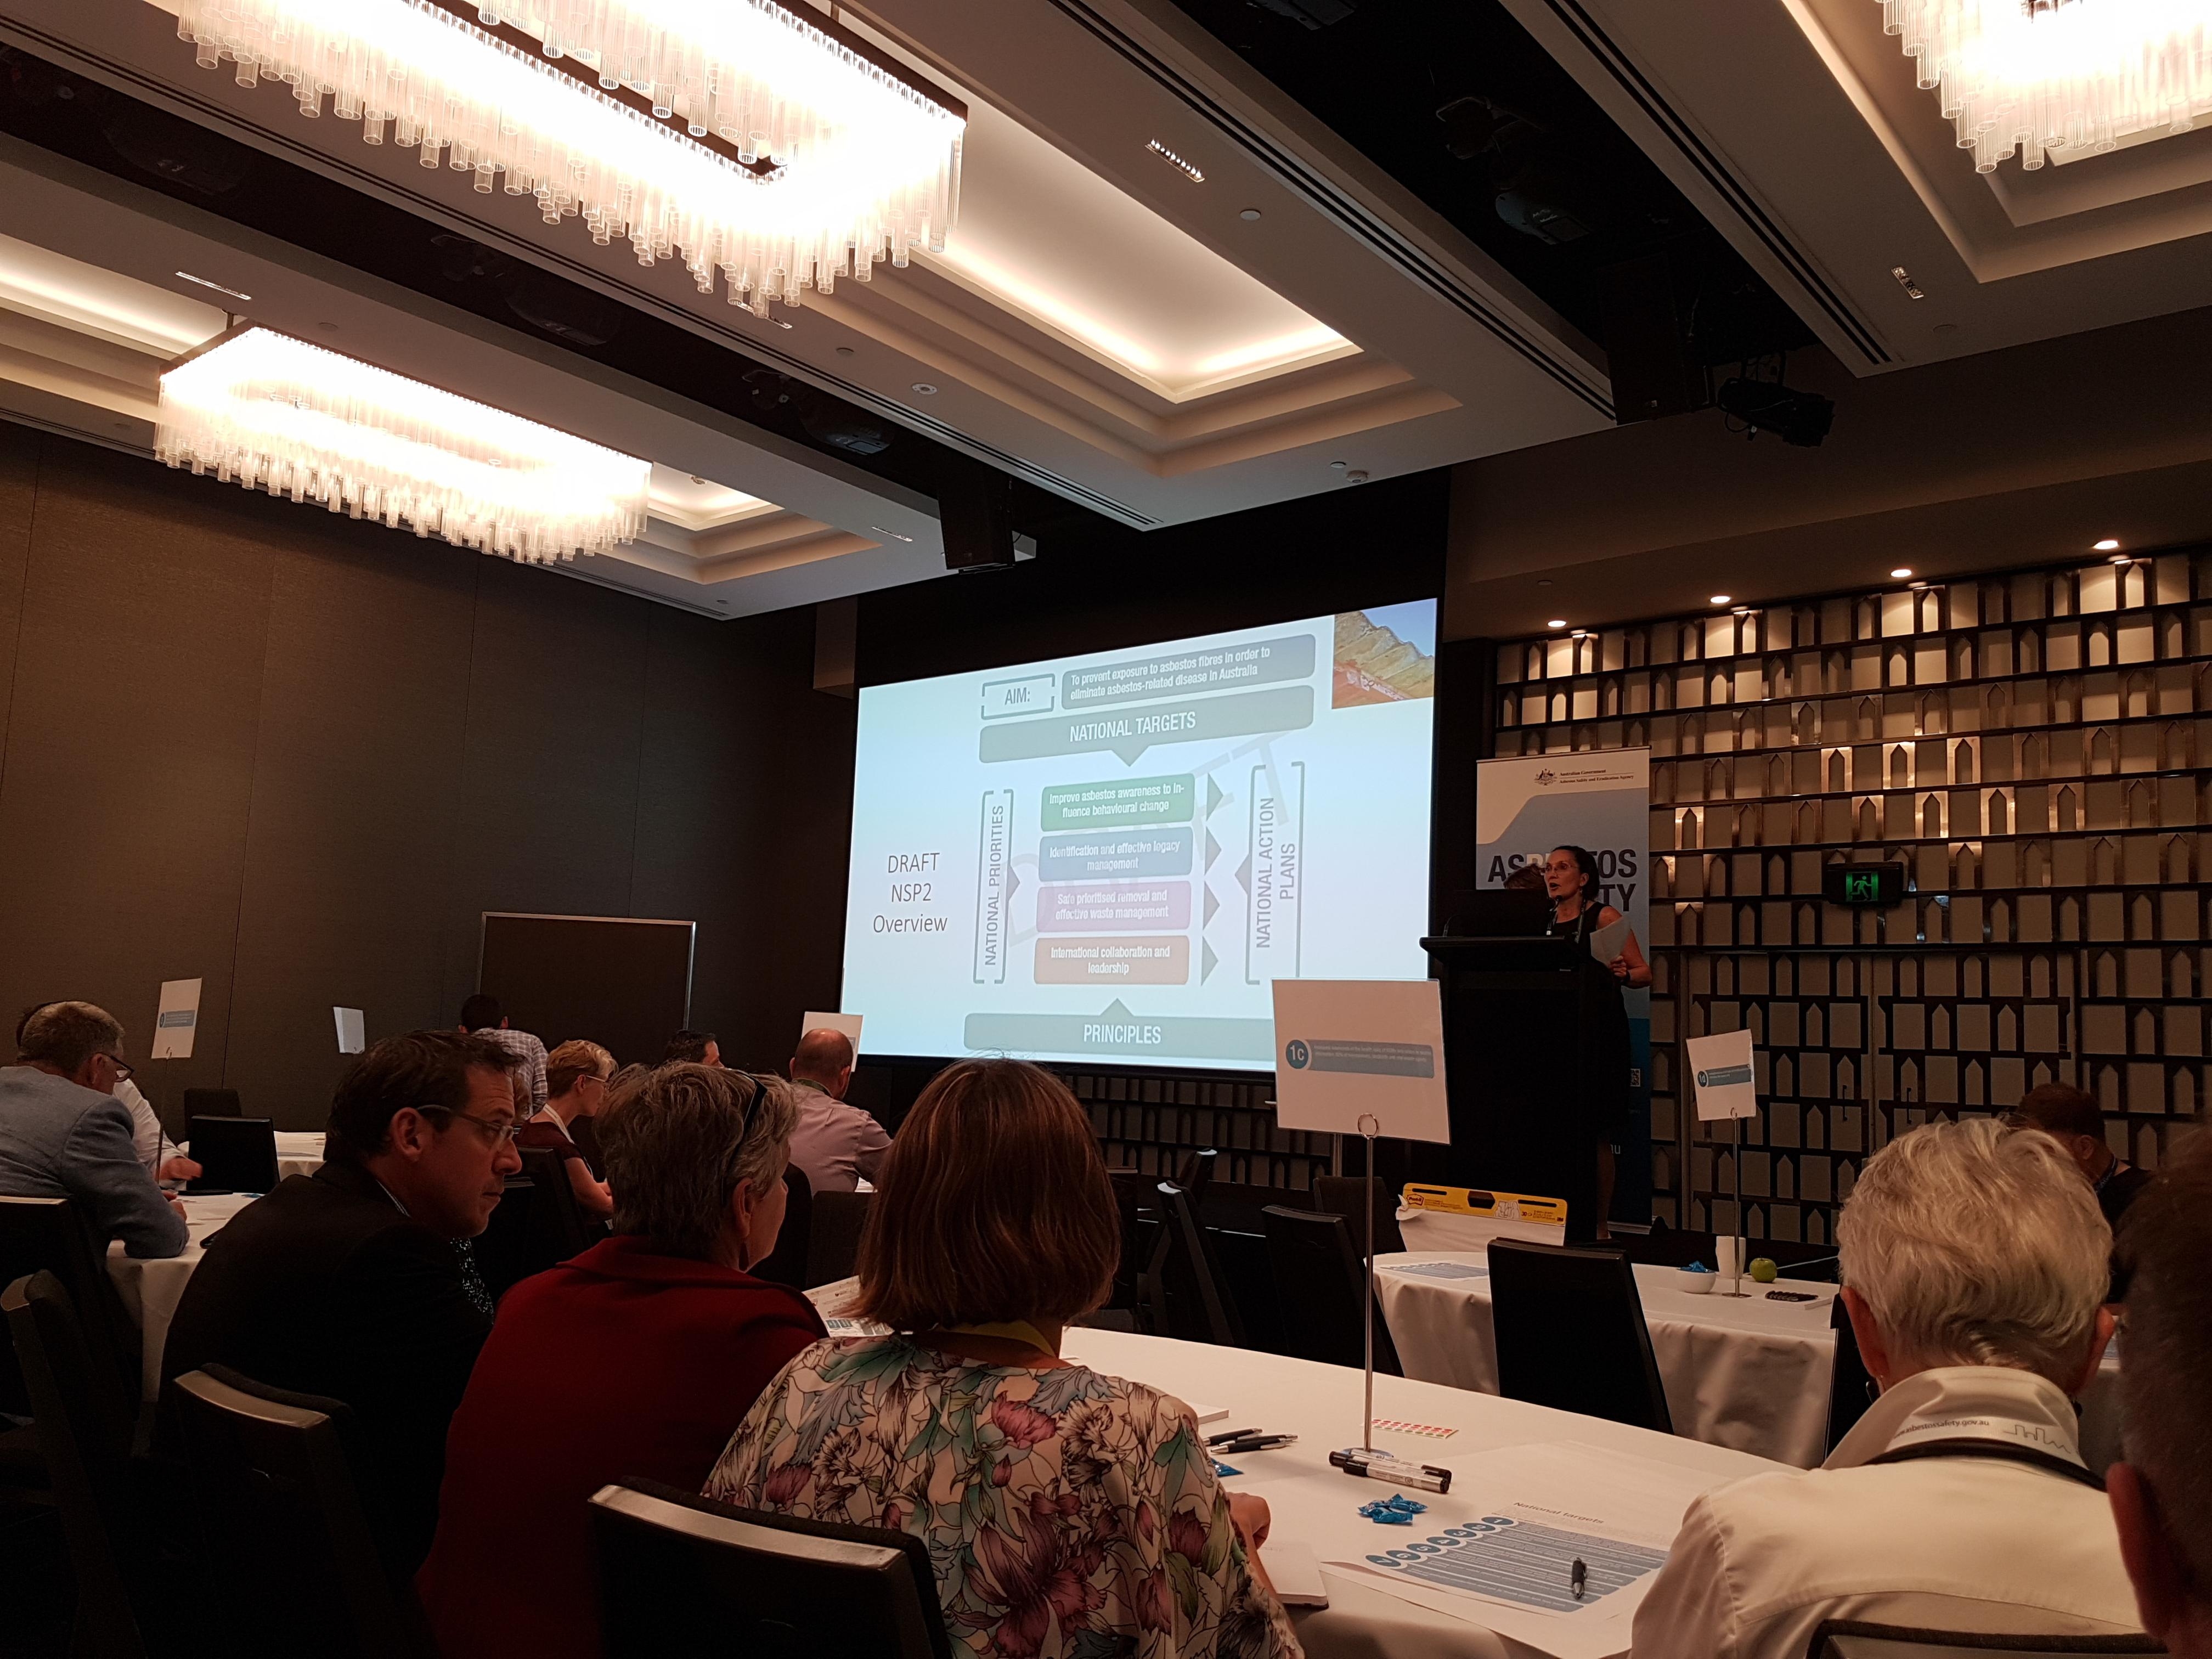 End of 3 intense days at the #2018ASEACONF